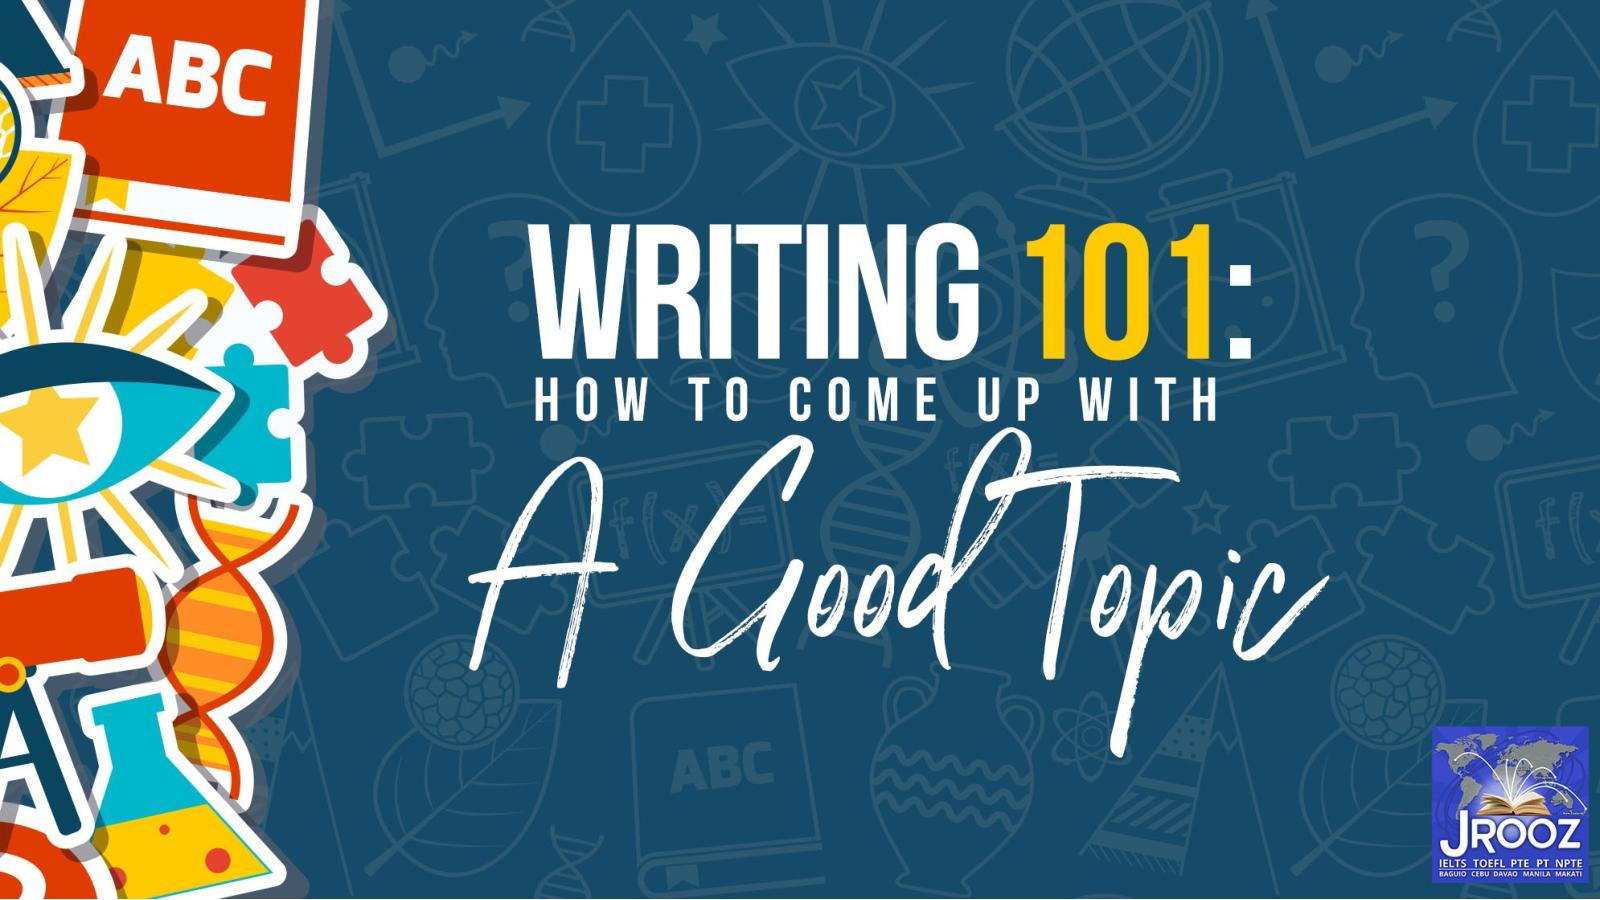 writing 101 Overview this guide explains how to format your documents in microsoft word so that they follow the standard rules for formatting academic papers as described in most mla and apa style books for undergraduate writing.